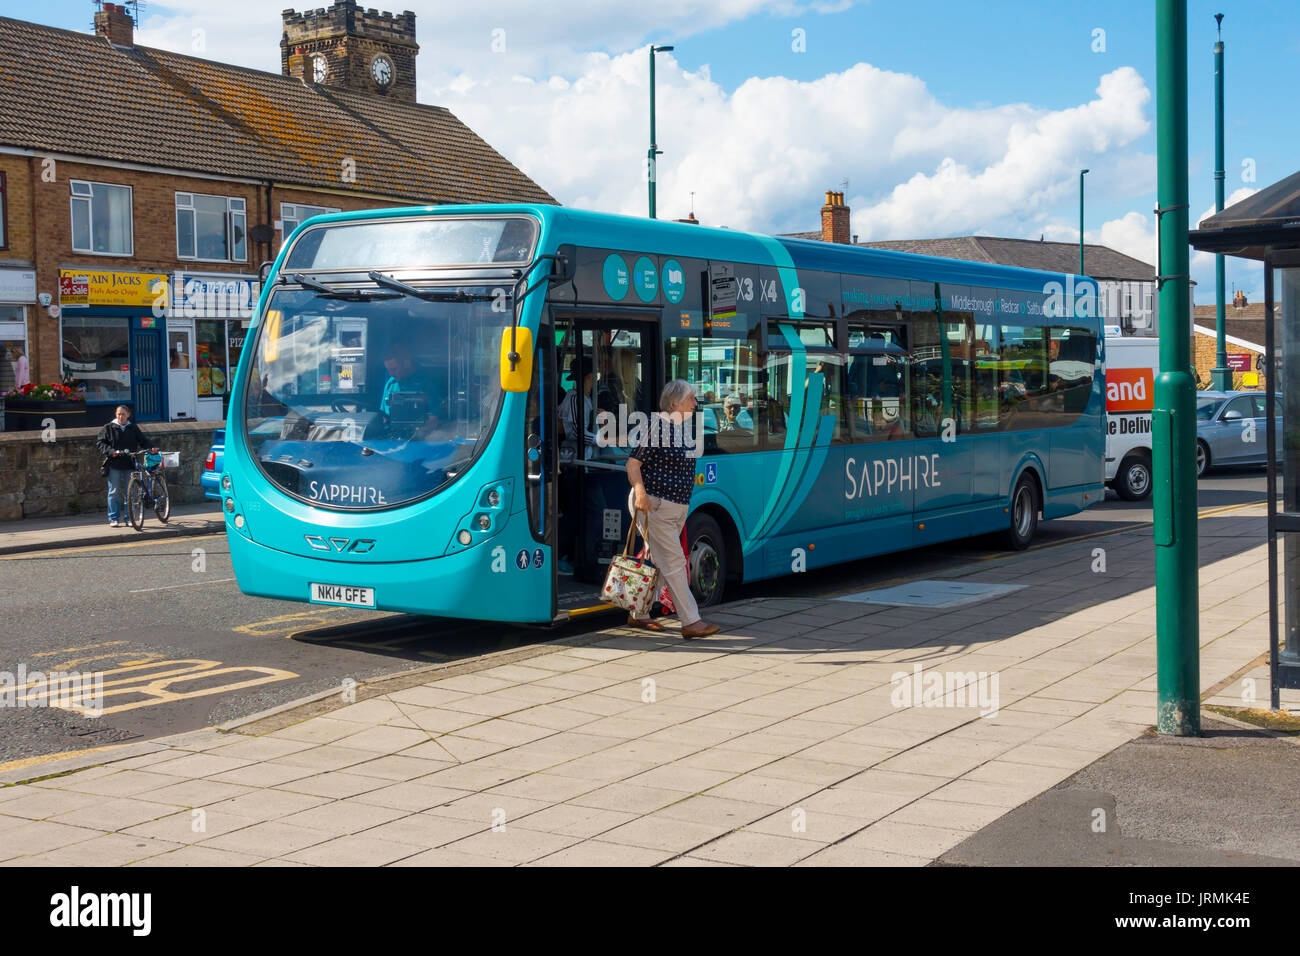 A lady alighting from an Arriva Sapphire bus providing a 15 minute interval service on selected routes countrywide here in Marske by the sea Yorkshire - Stock Image